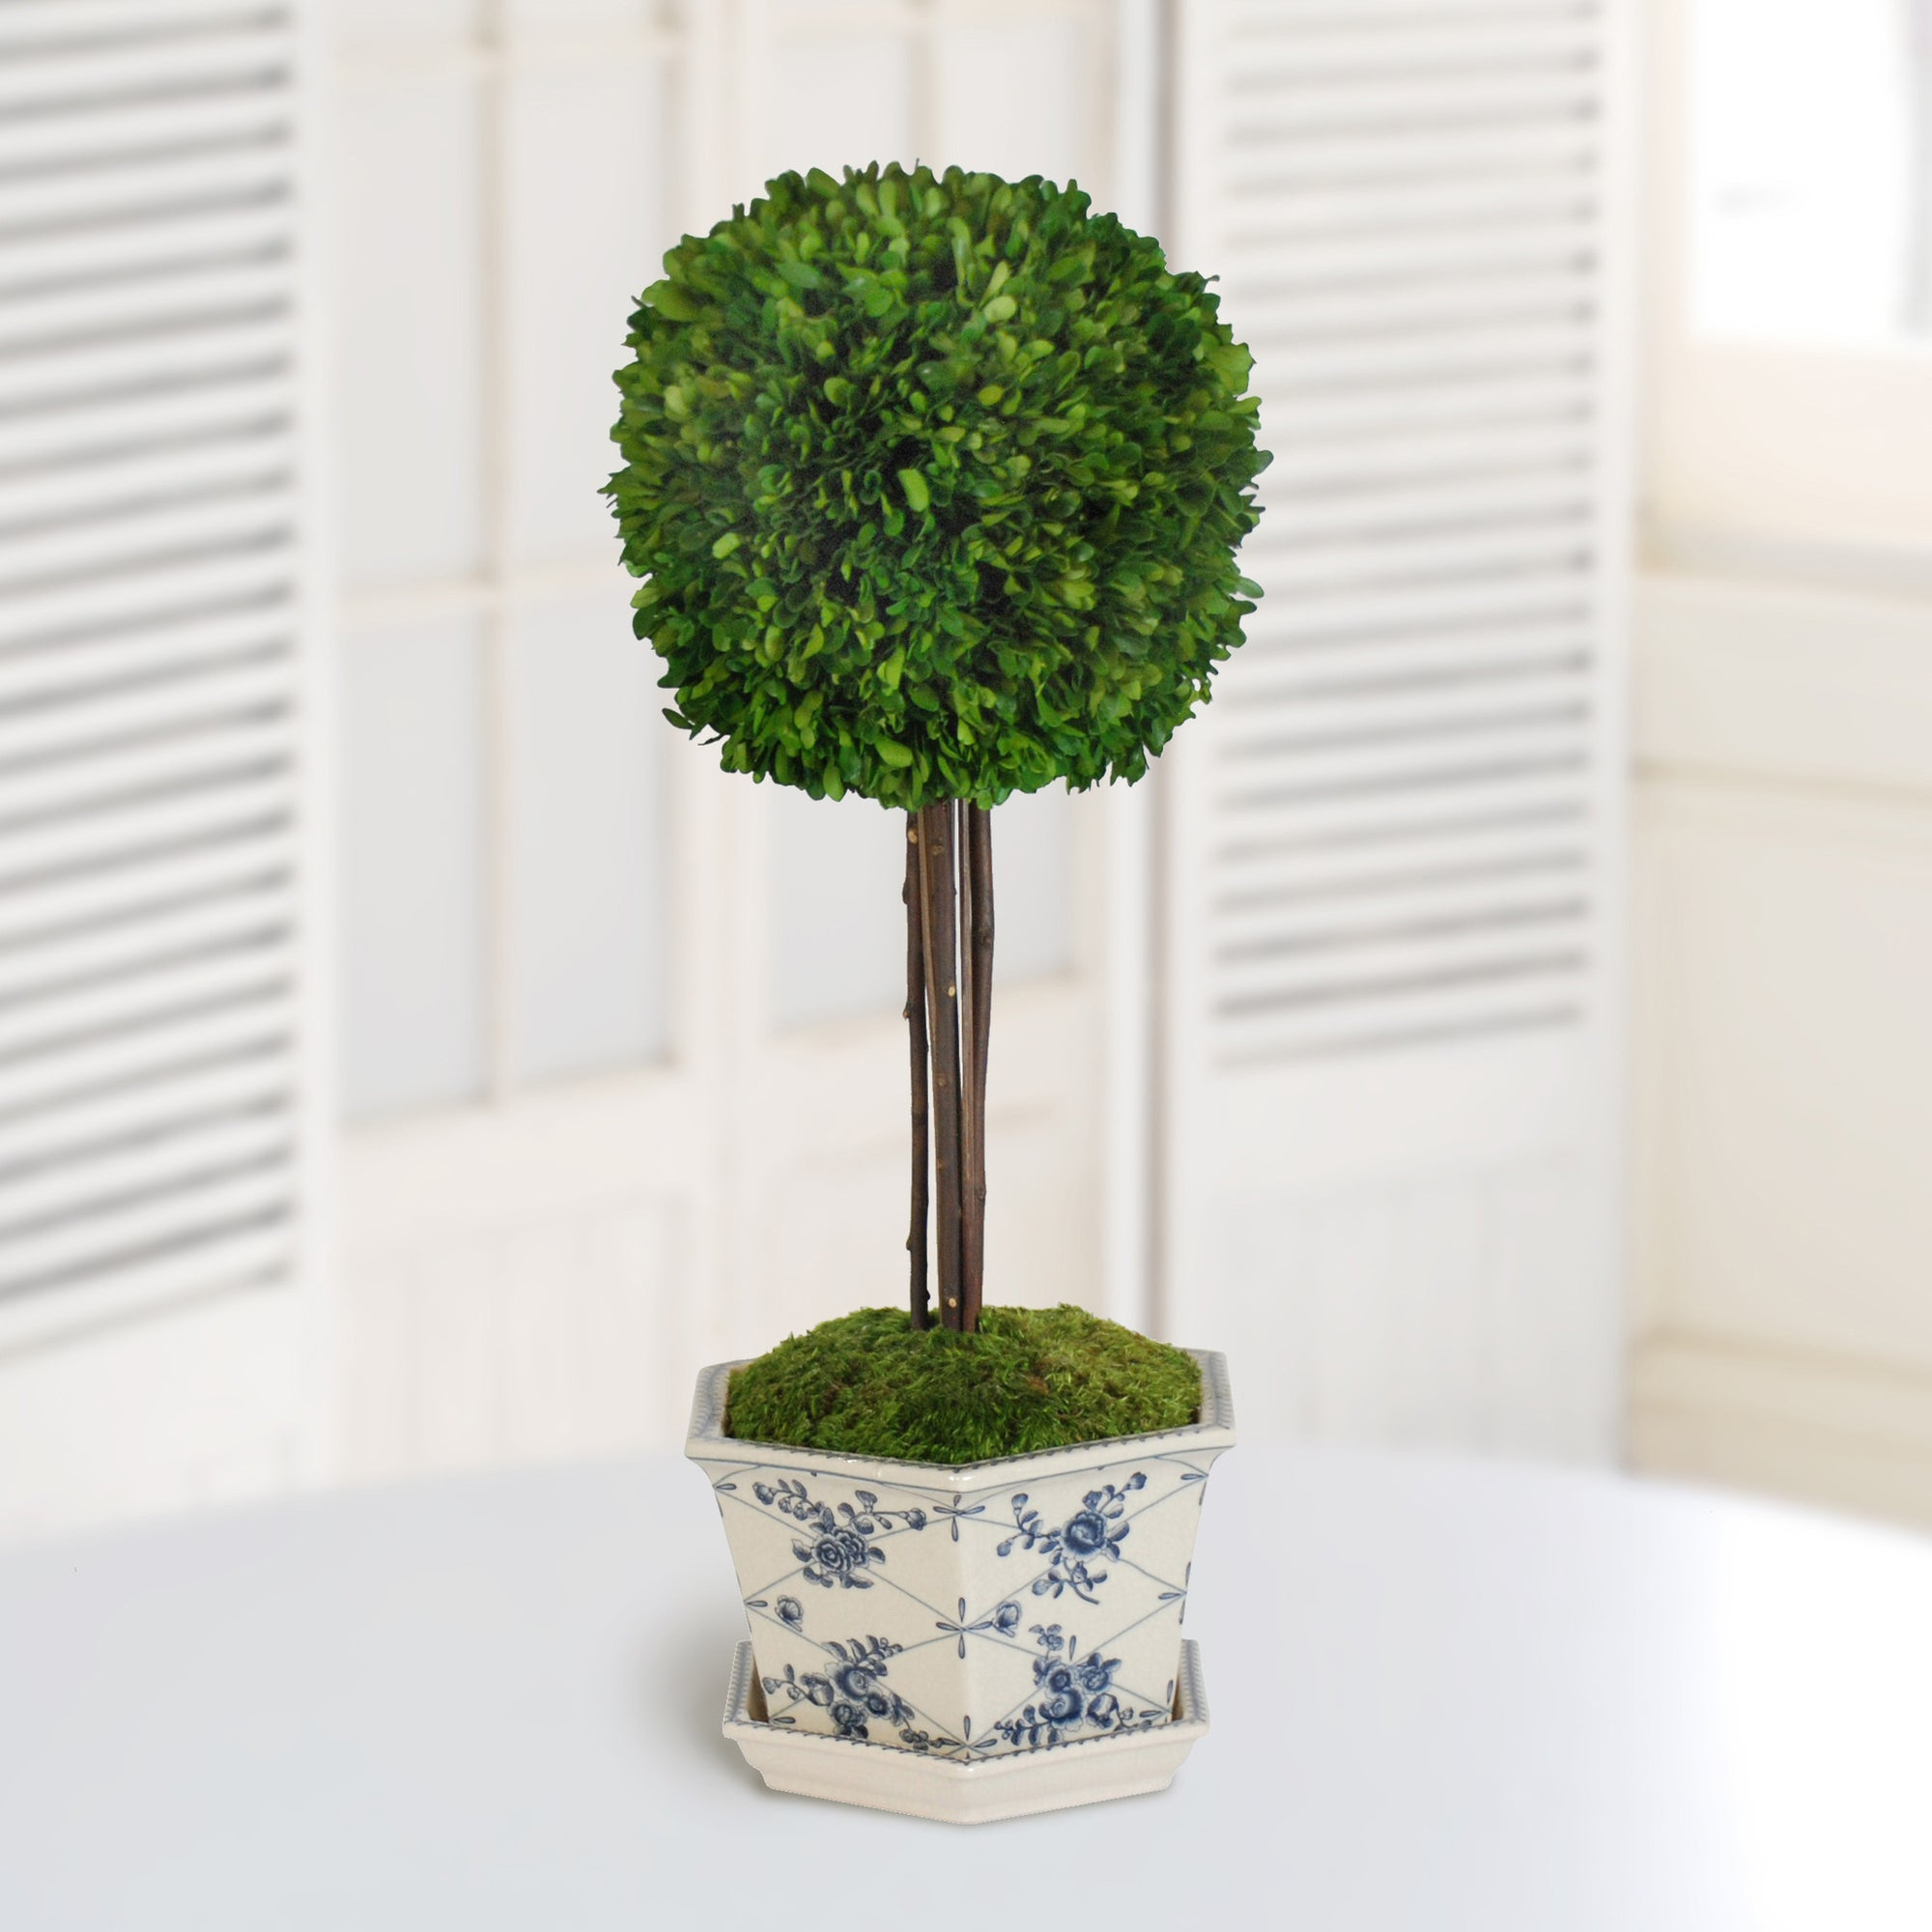 BOXWOOD BALL IN POT CACHE (WHD097-GR) - Winward Home faux floral arrangements